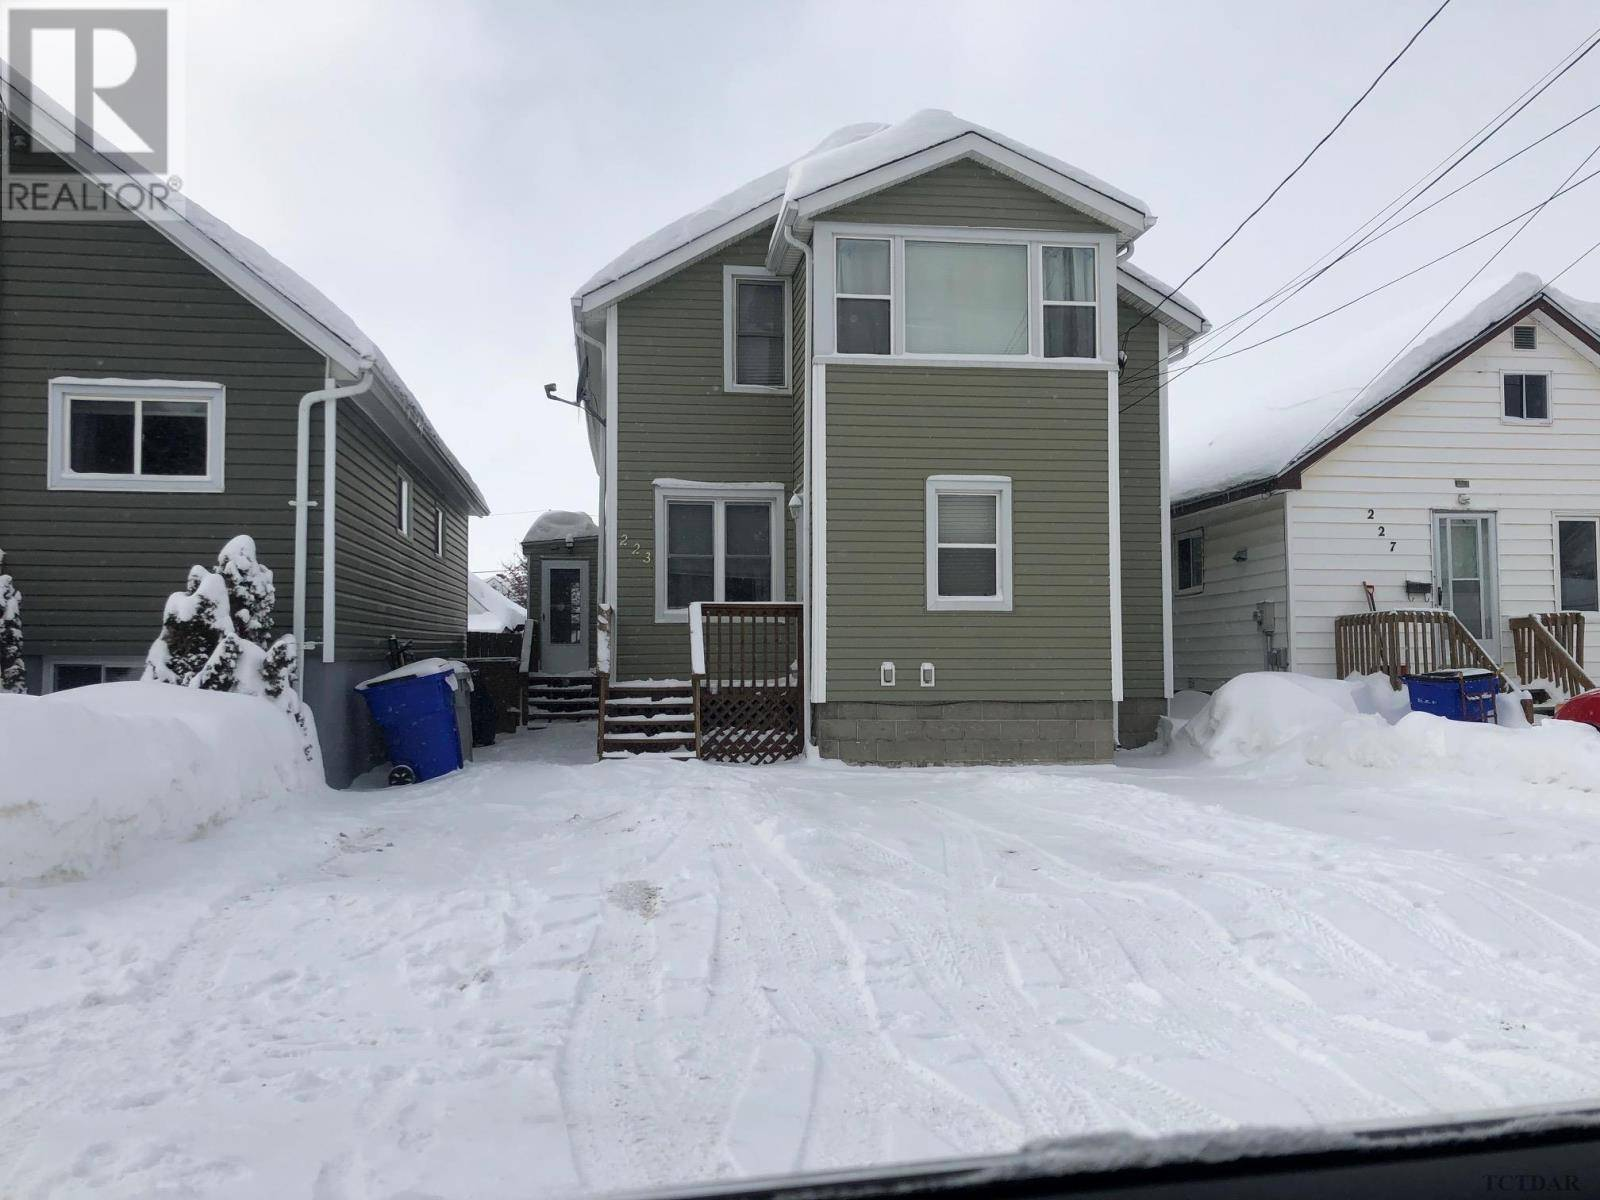 Townhouse for sale at 223 Cedar St N Timmins Ontario - MLS: TM200327